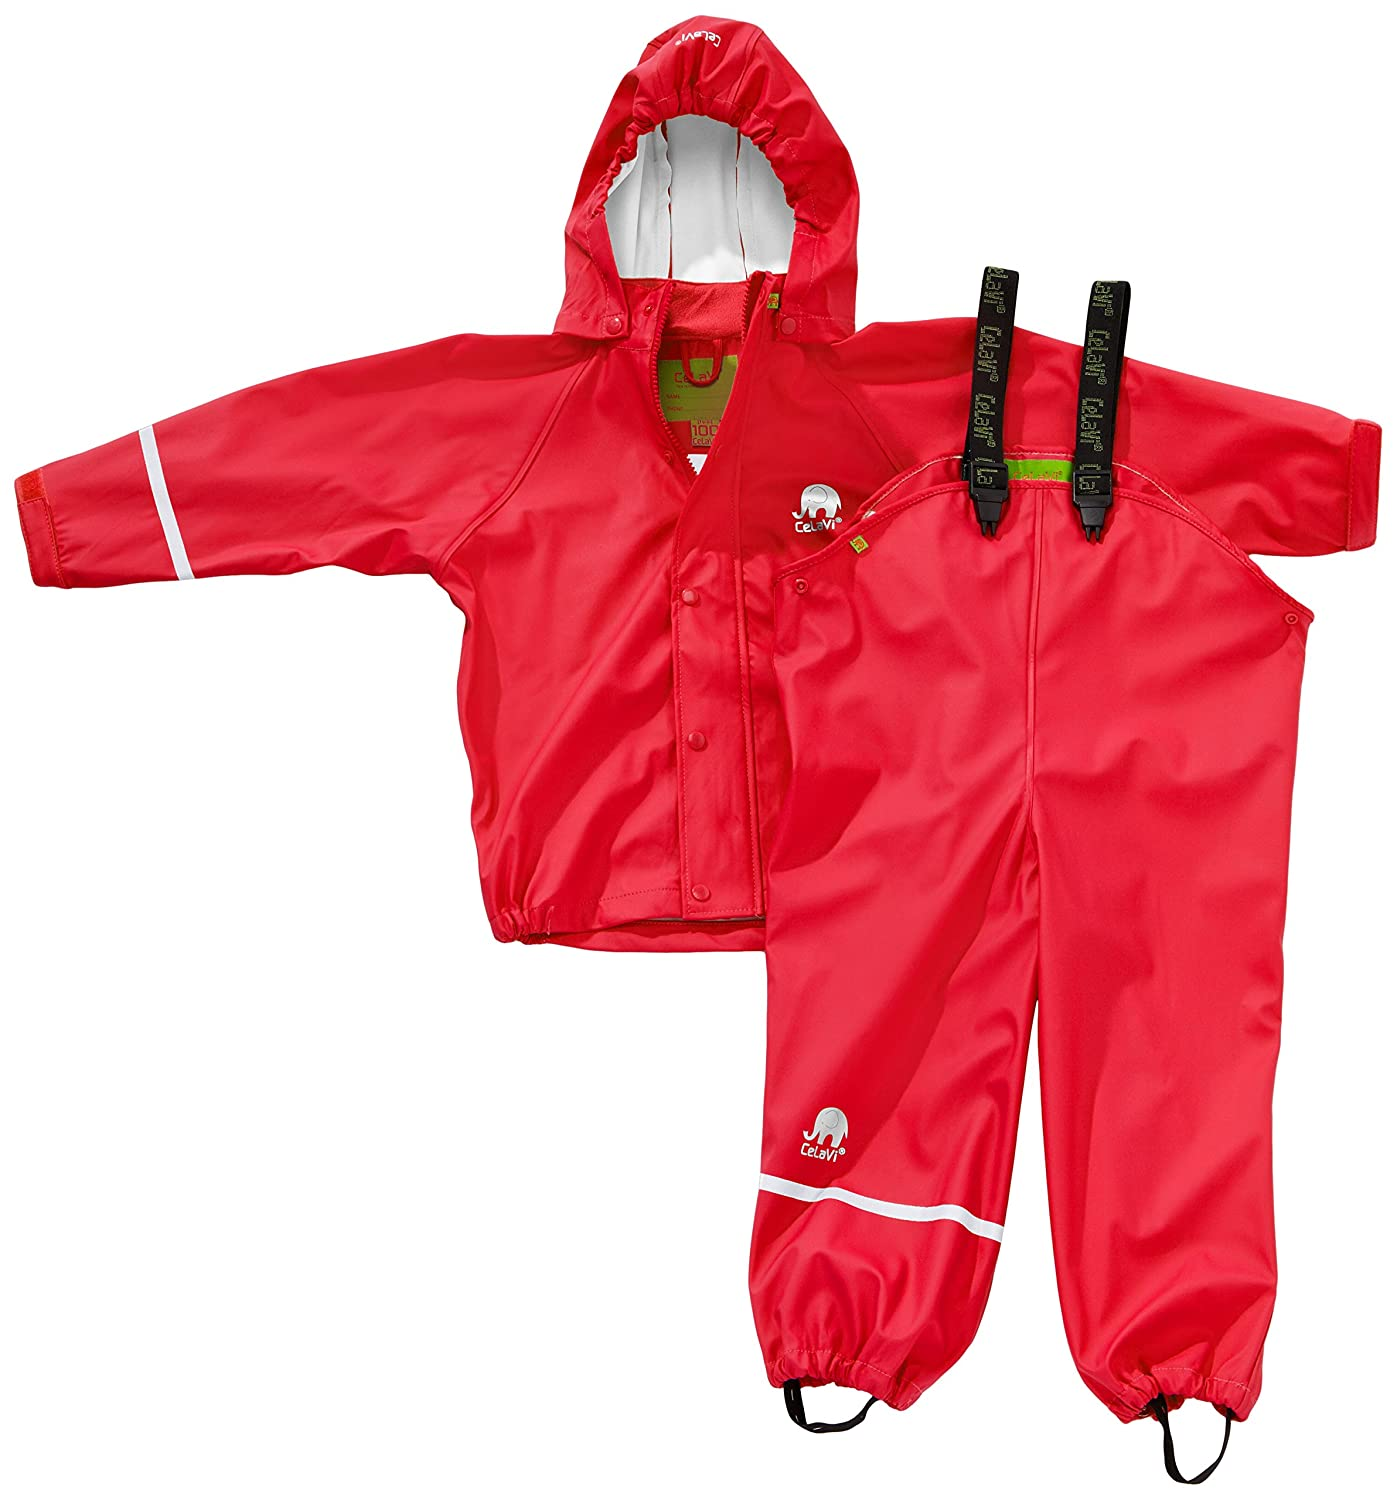 Celavi Unisex Basic Suit Solid Raincoat 1145